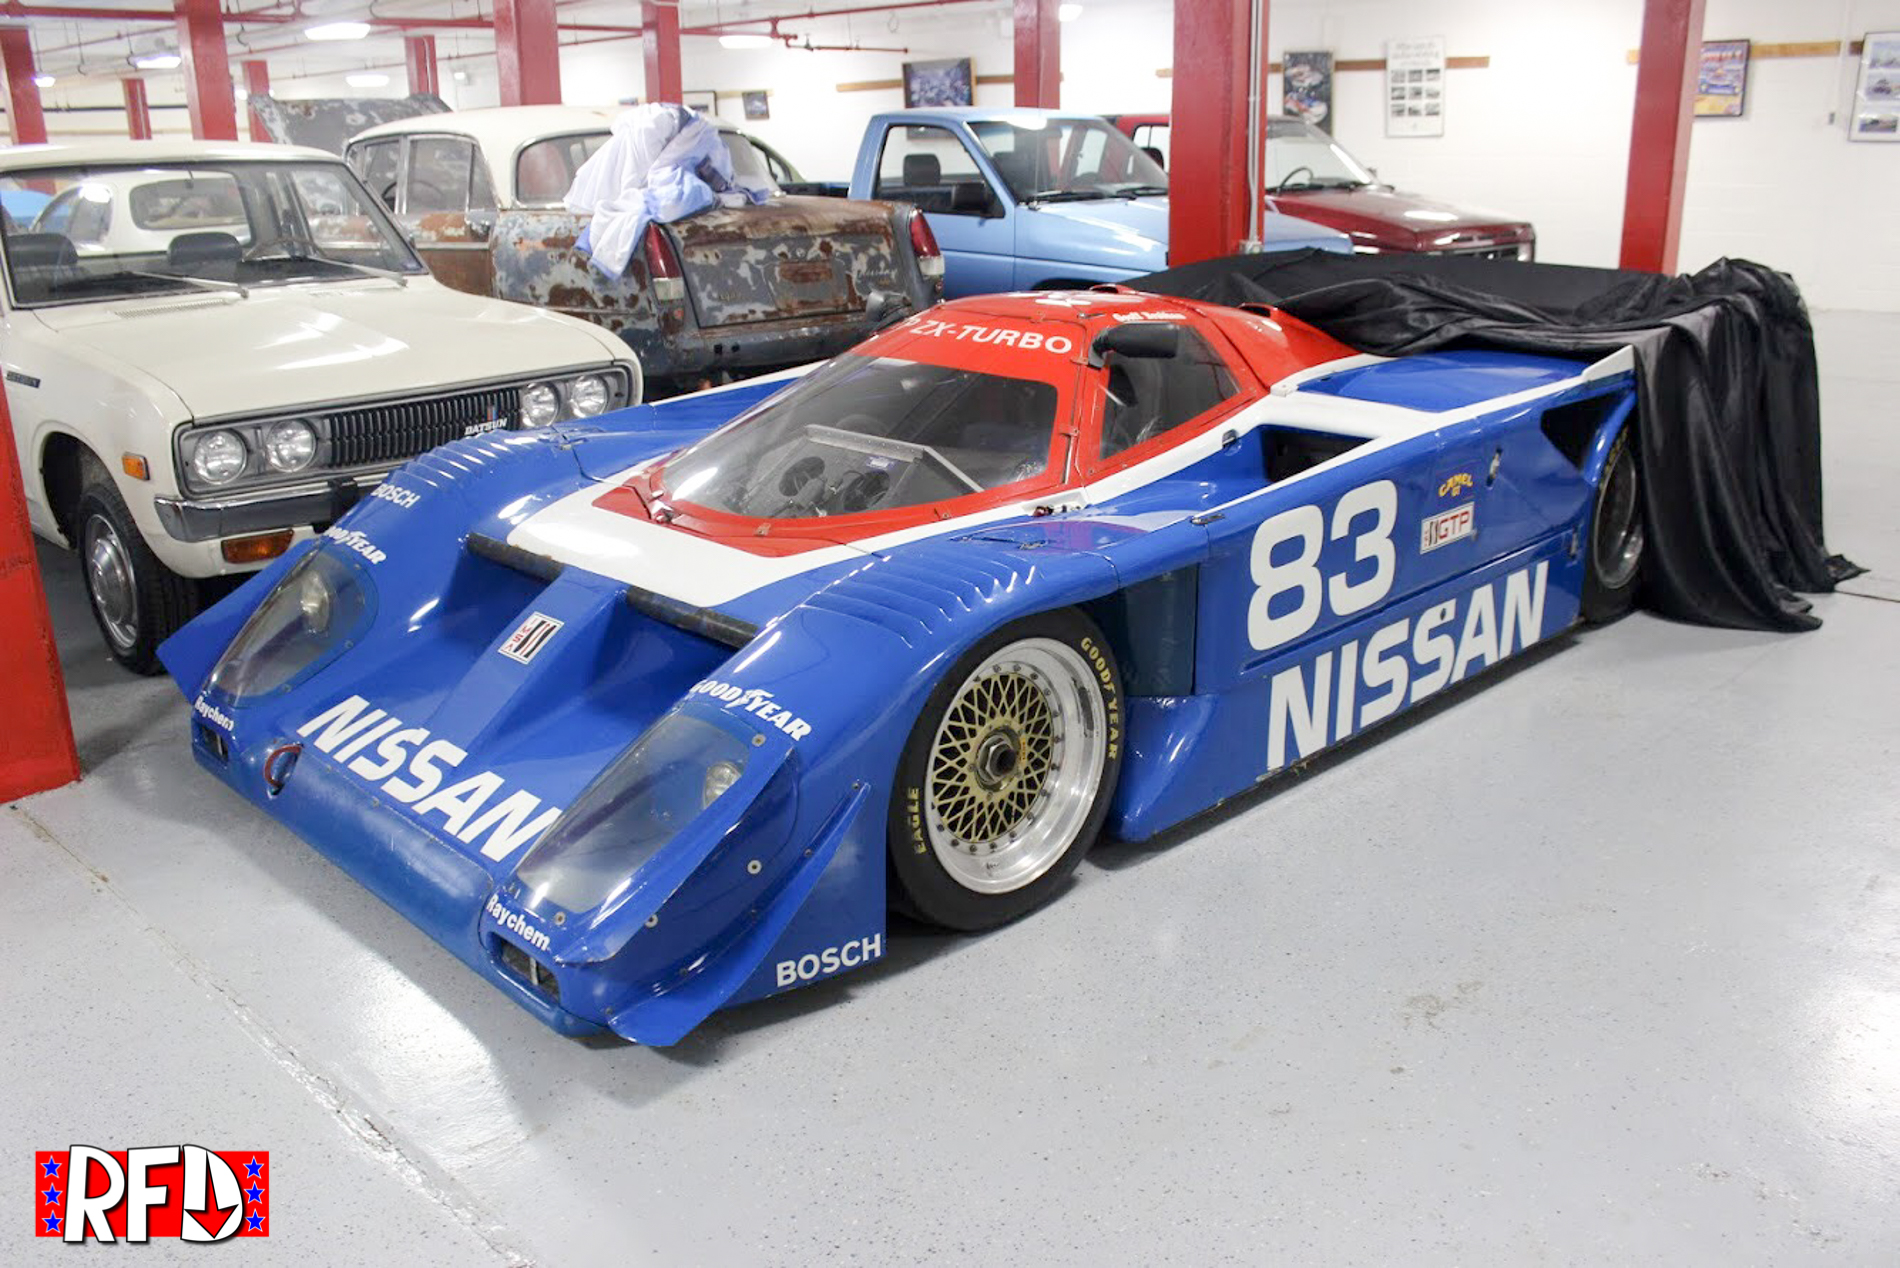 Nissan Museum